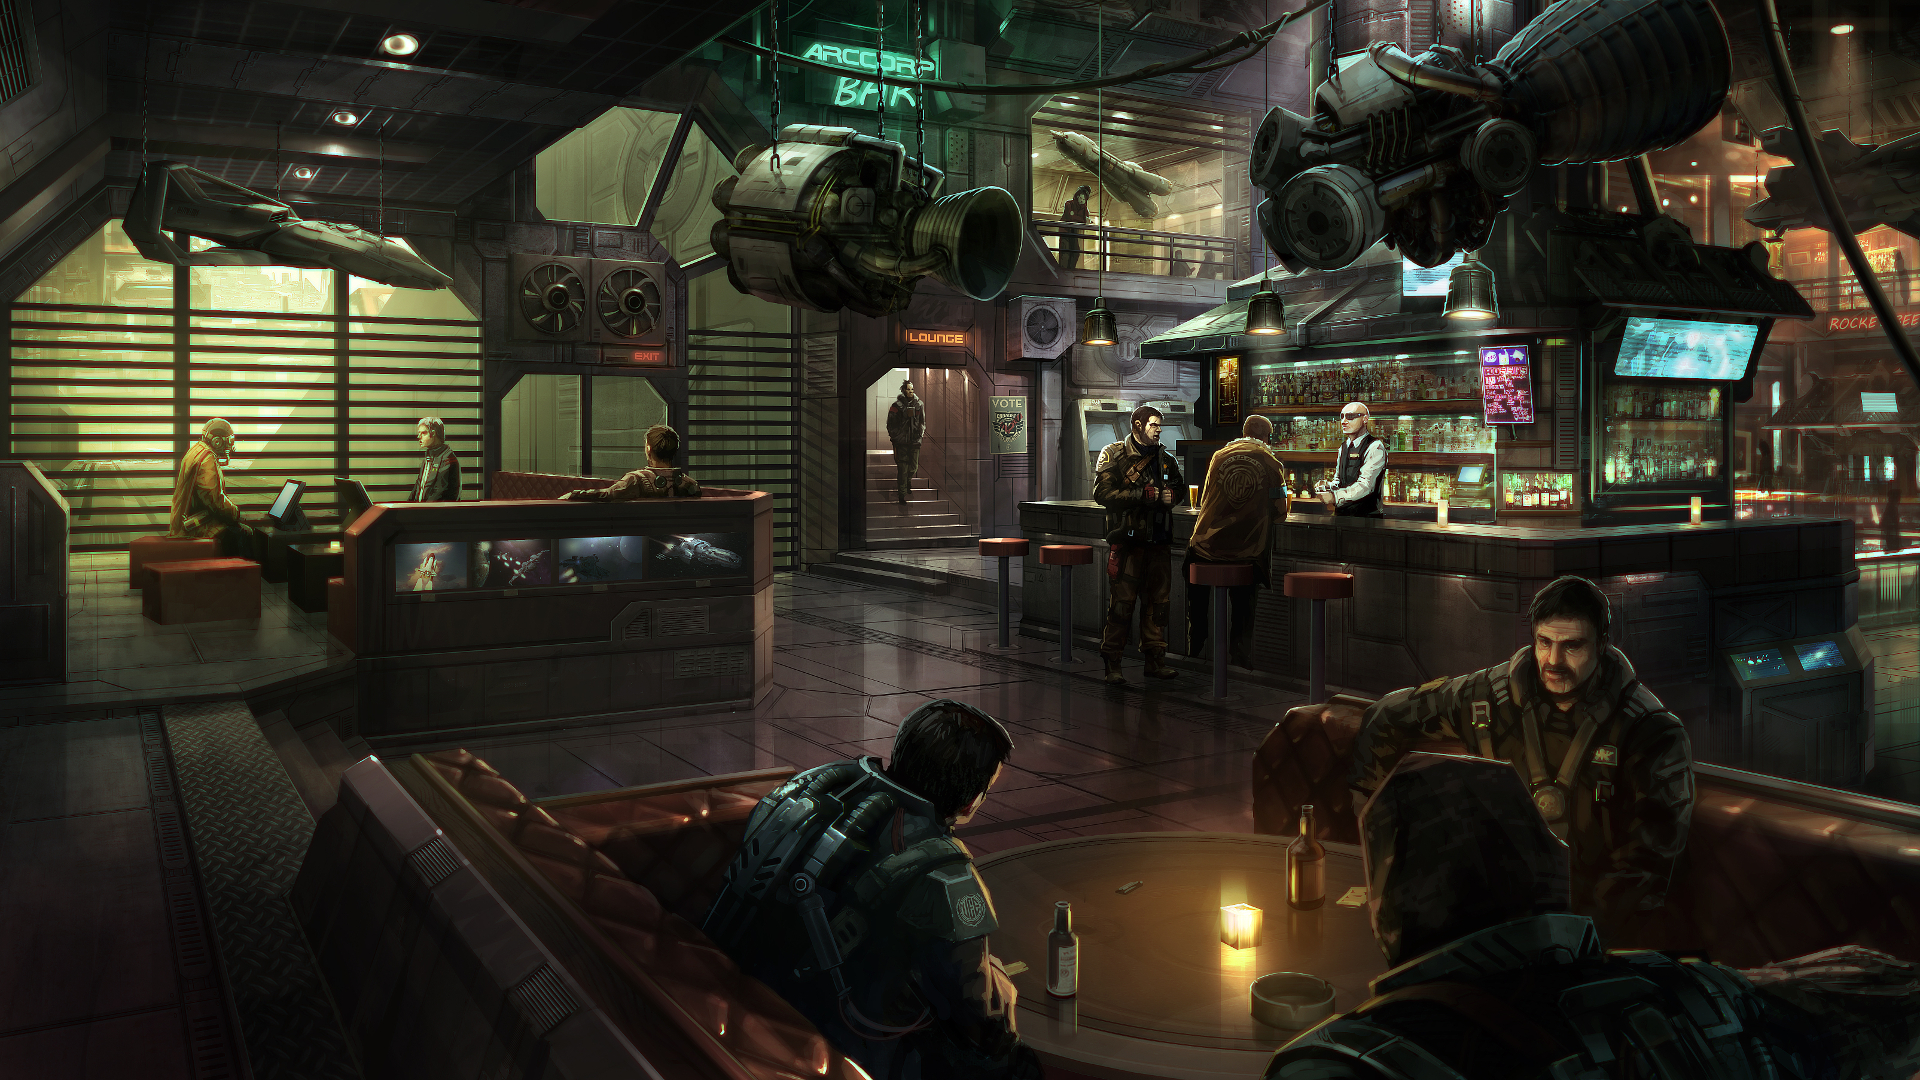 star_citizen_bar_atwork_1920x1080.jpg